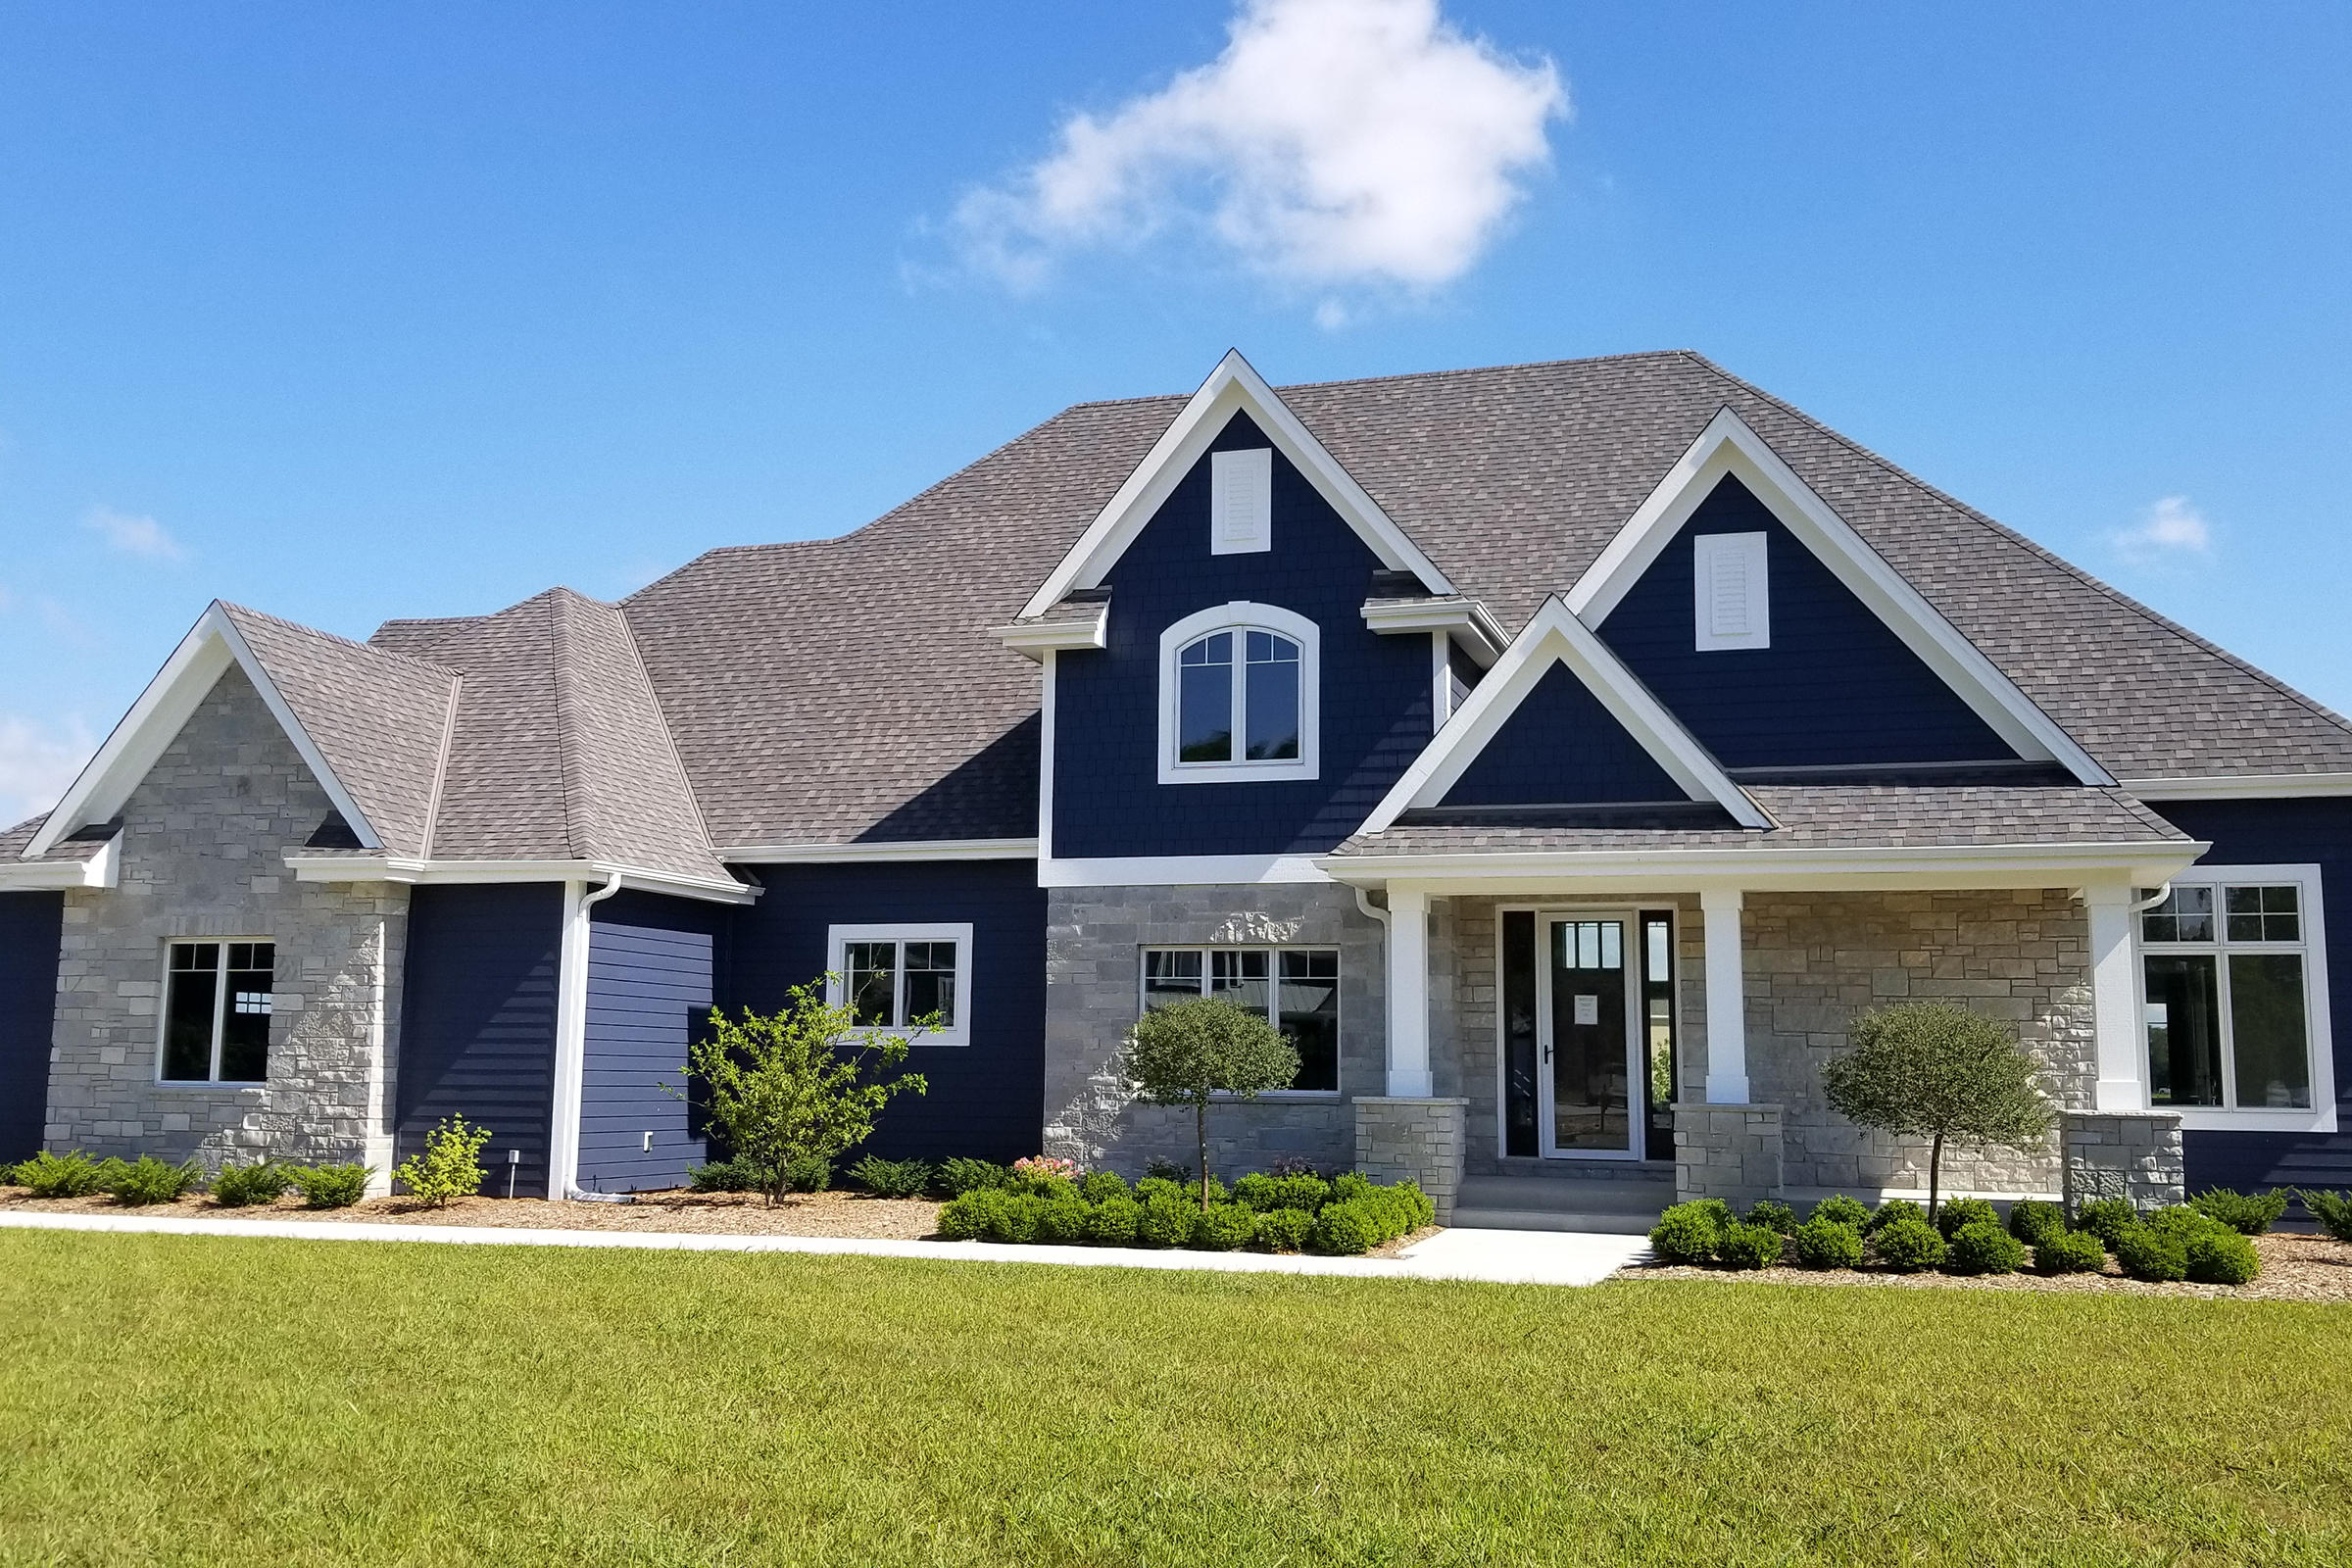 259 Four Winds Ct, Hartland, Wisconsin 53029, 6 Bedrooms Bedrooms, ,4 BathroomsBathrooms,Single-Family,For Sale,Four Winds Ct,1619342